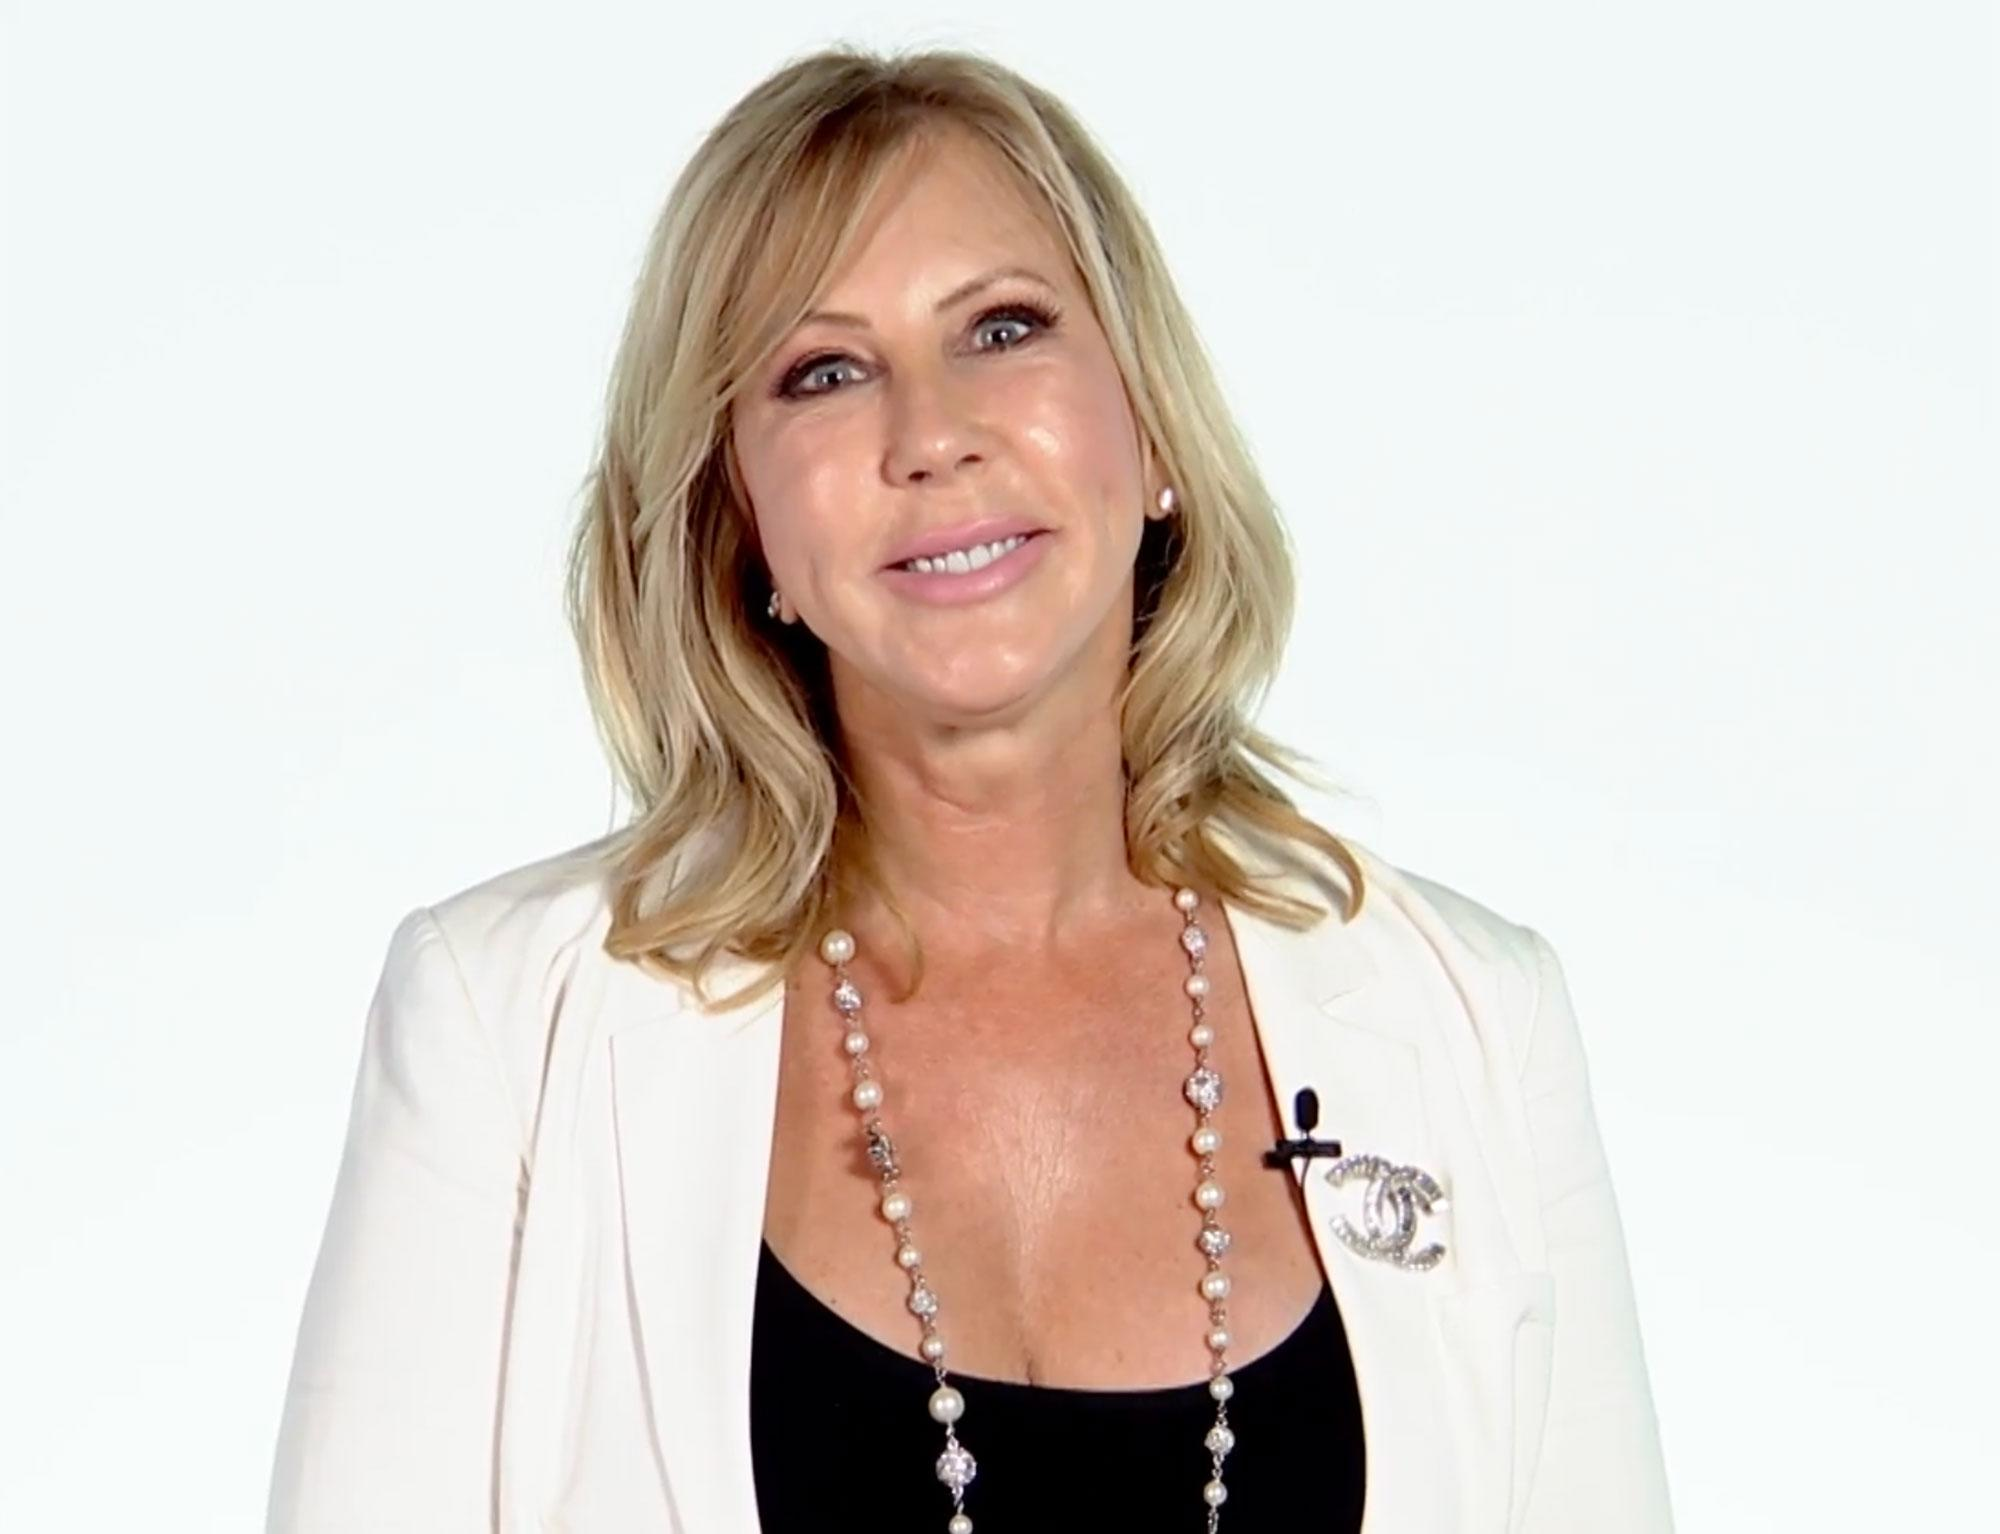 Vicki Gunvalson Says Her New Podcast & Reality Show Will